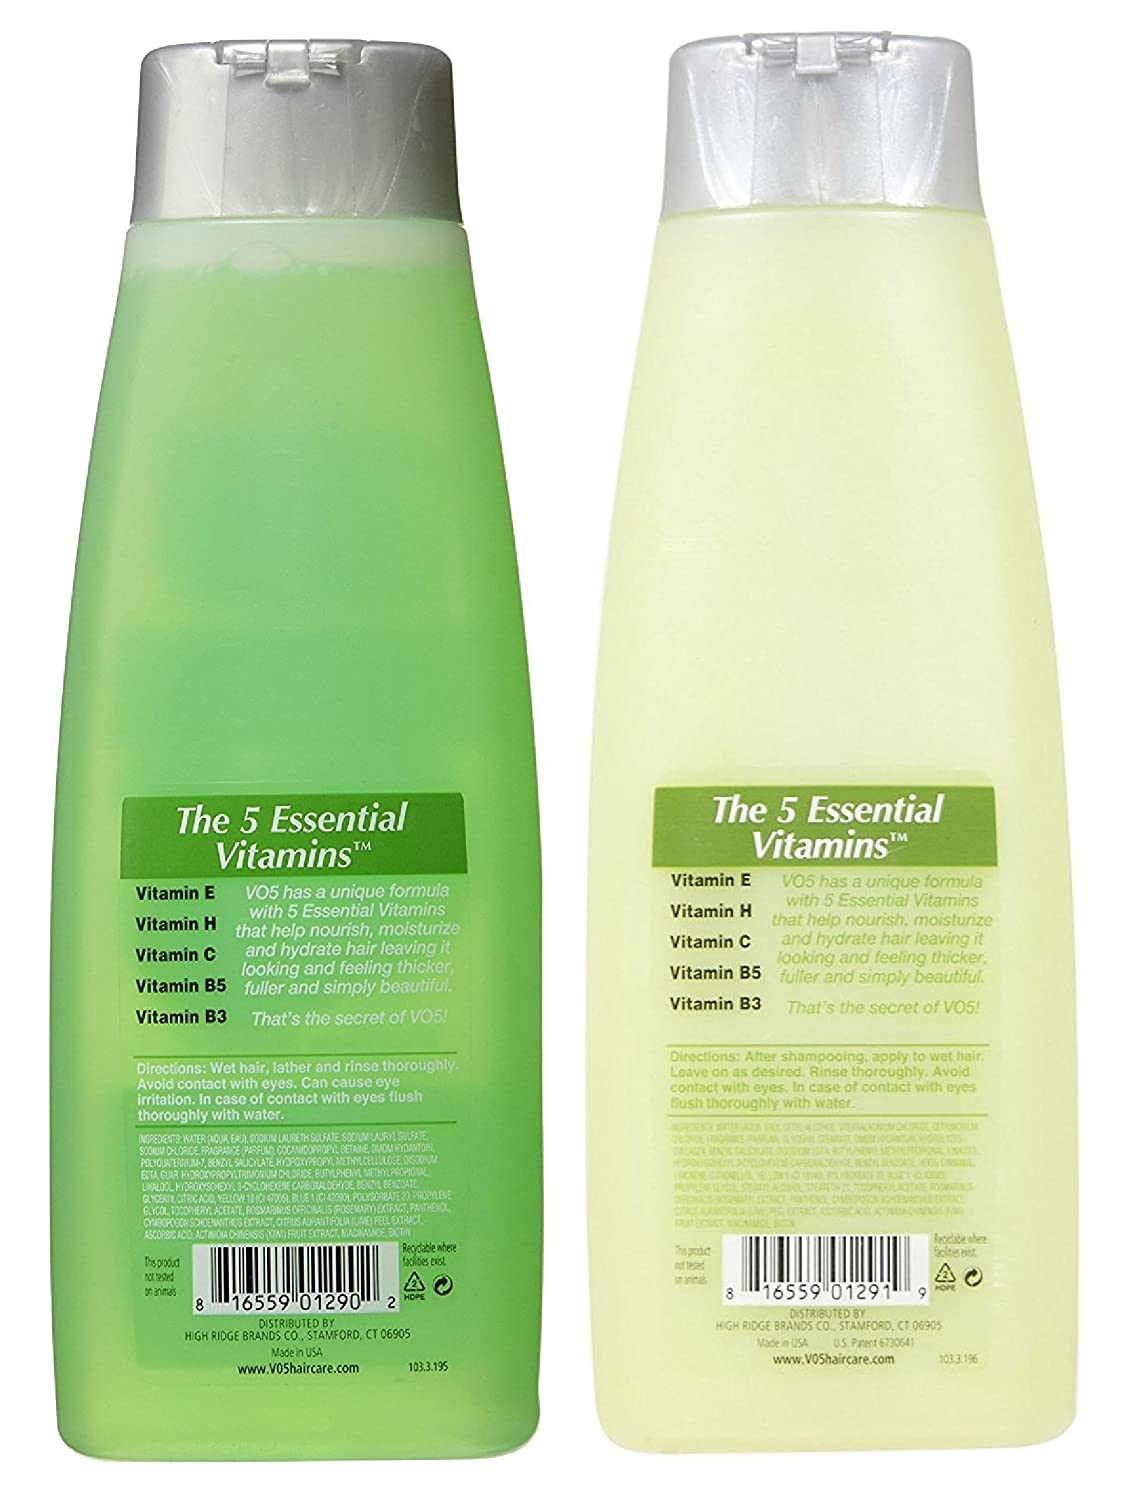 Amazon.com : VO5 Herbal Escapes Kiwi Lime Squeeze + Lemongrass Extract Shampoo & Conditioner (15 Oz each) : Beauty